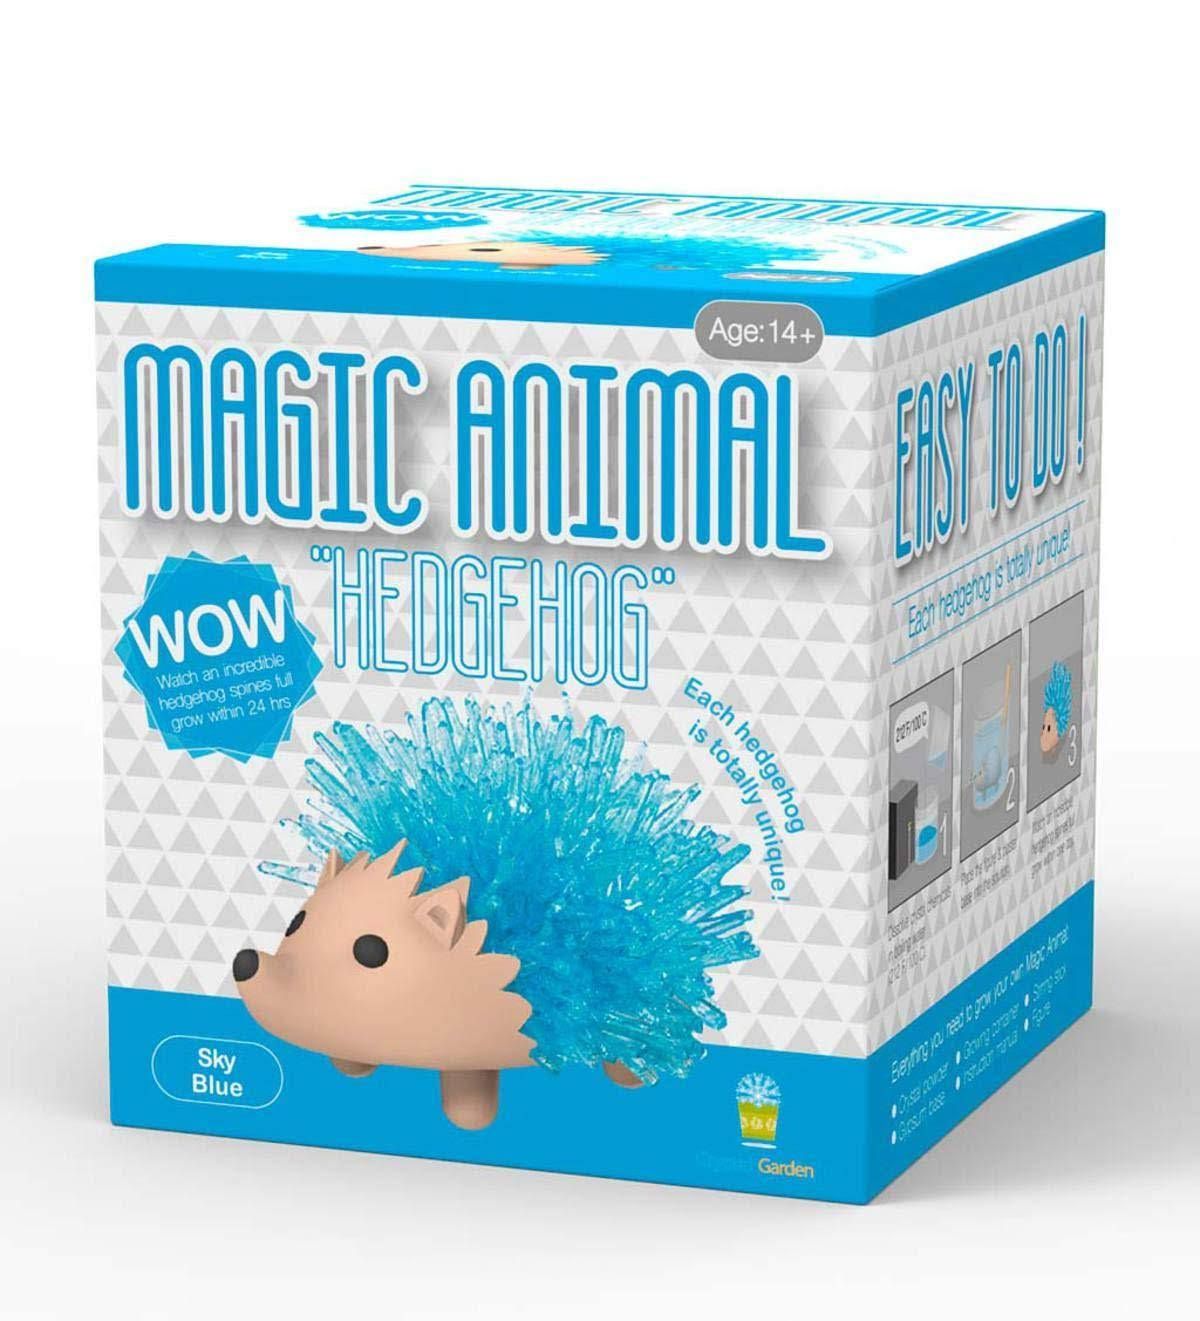 Magic Animal: Hedgehog (Grow Crystal Garden) Assorted Colors, Size: One Size